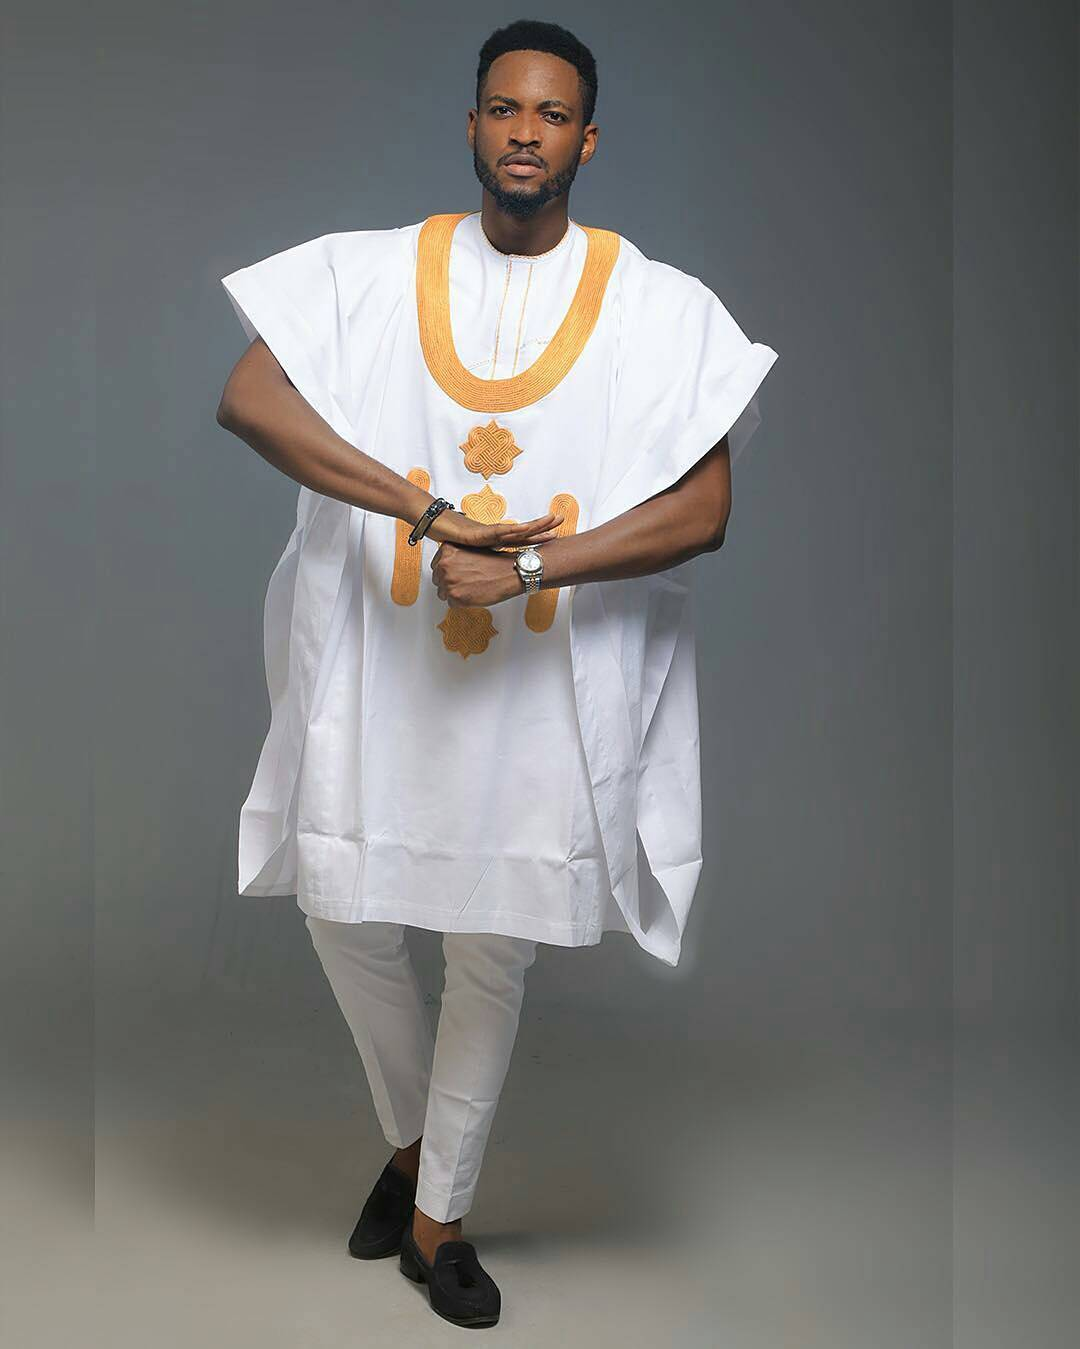 Pictures of nigerian native wears for men Cady Studios (cadystudios) on Pinterest